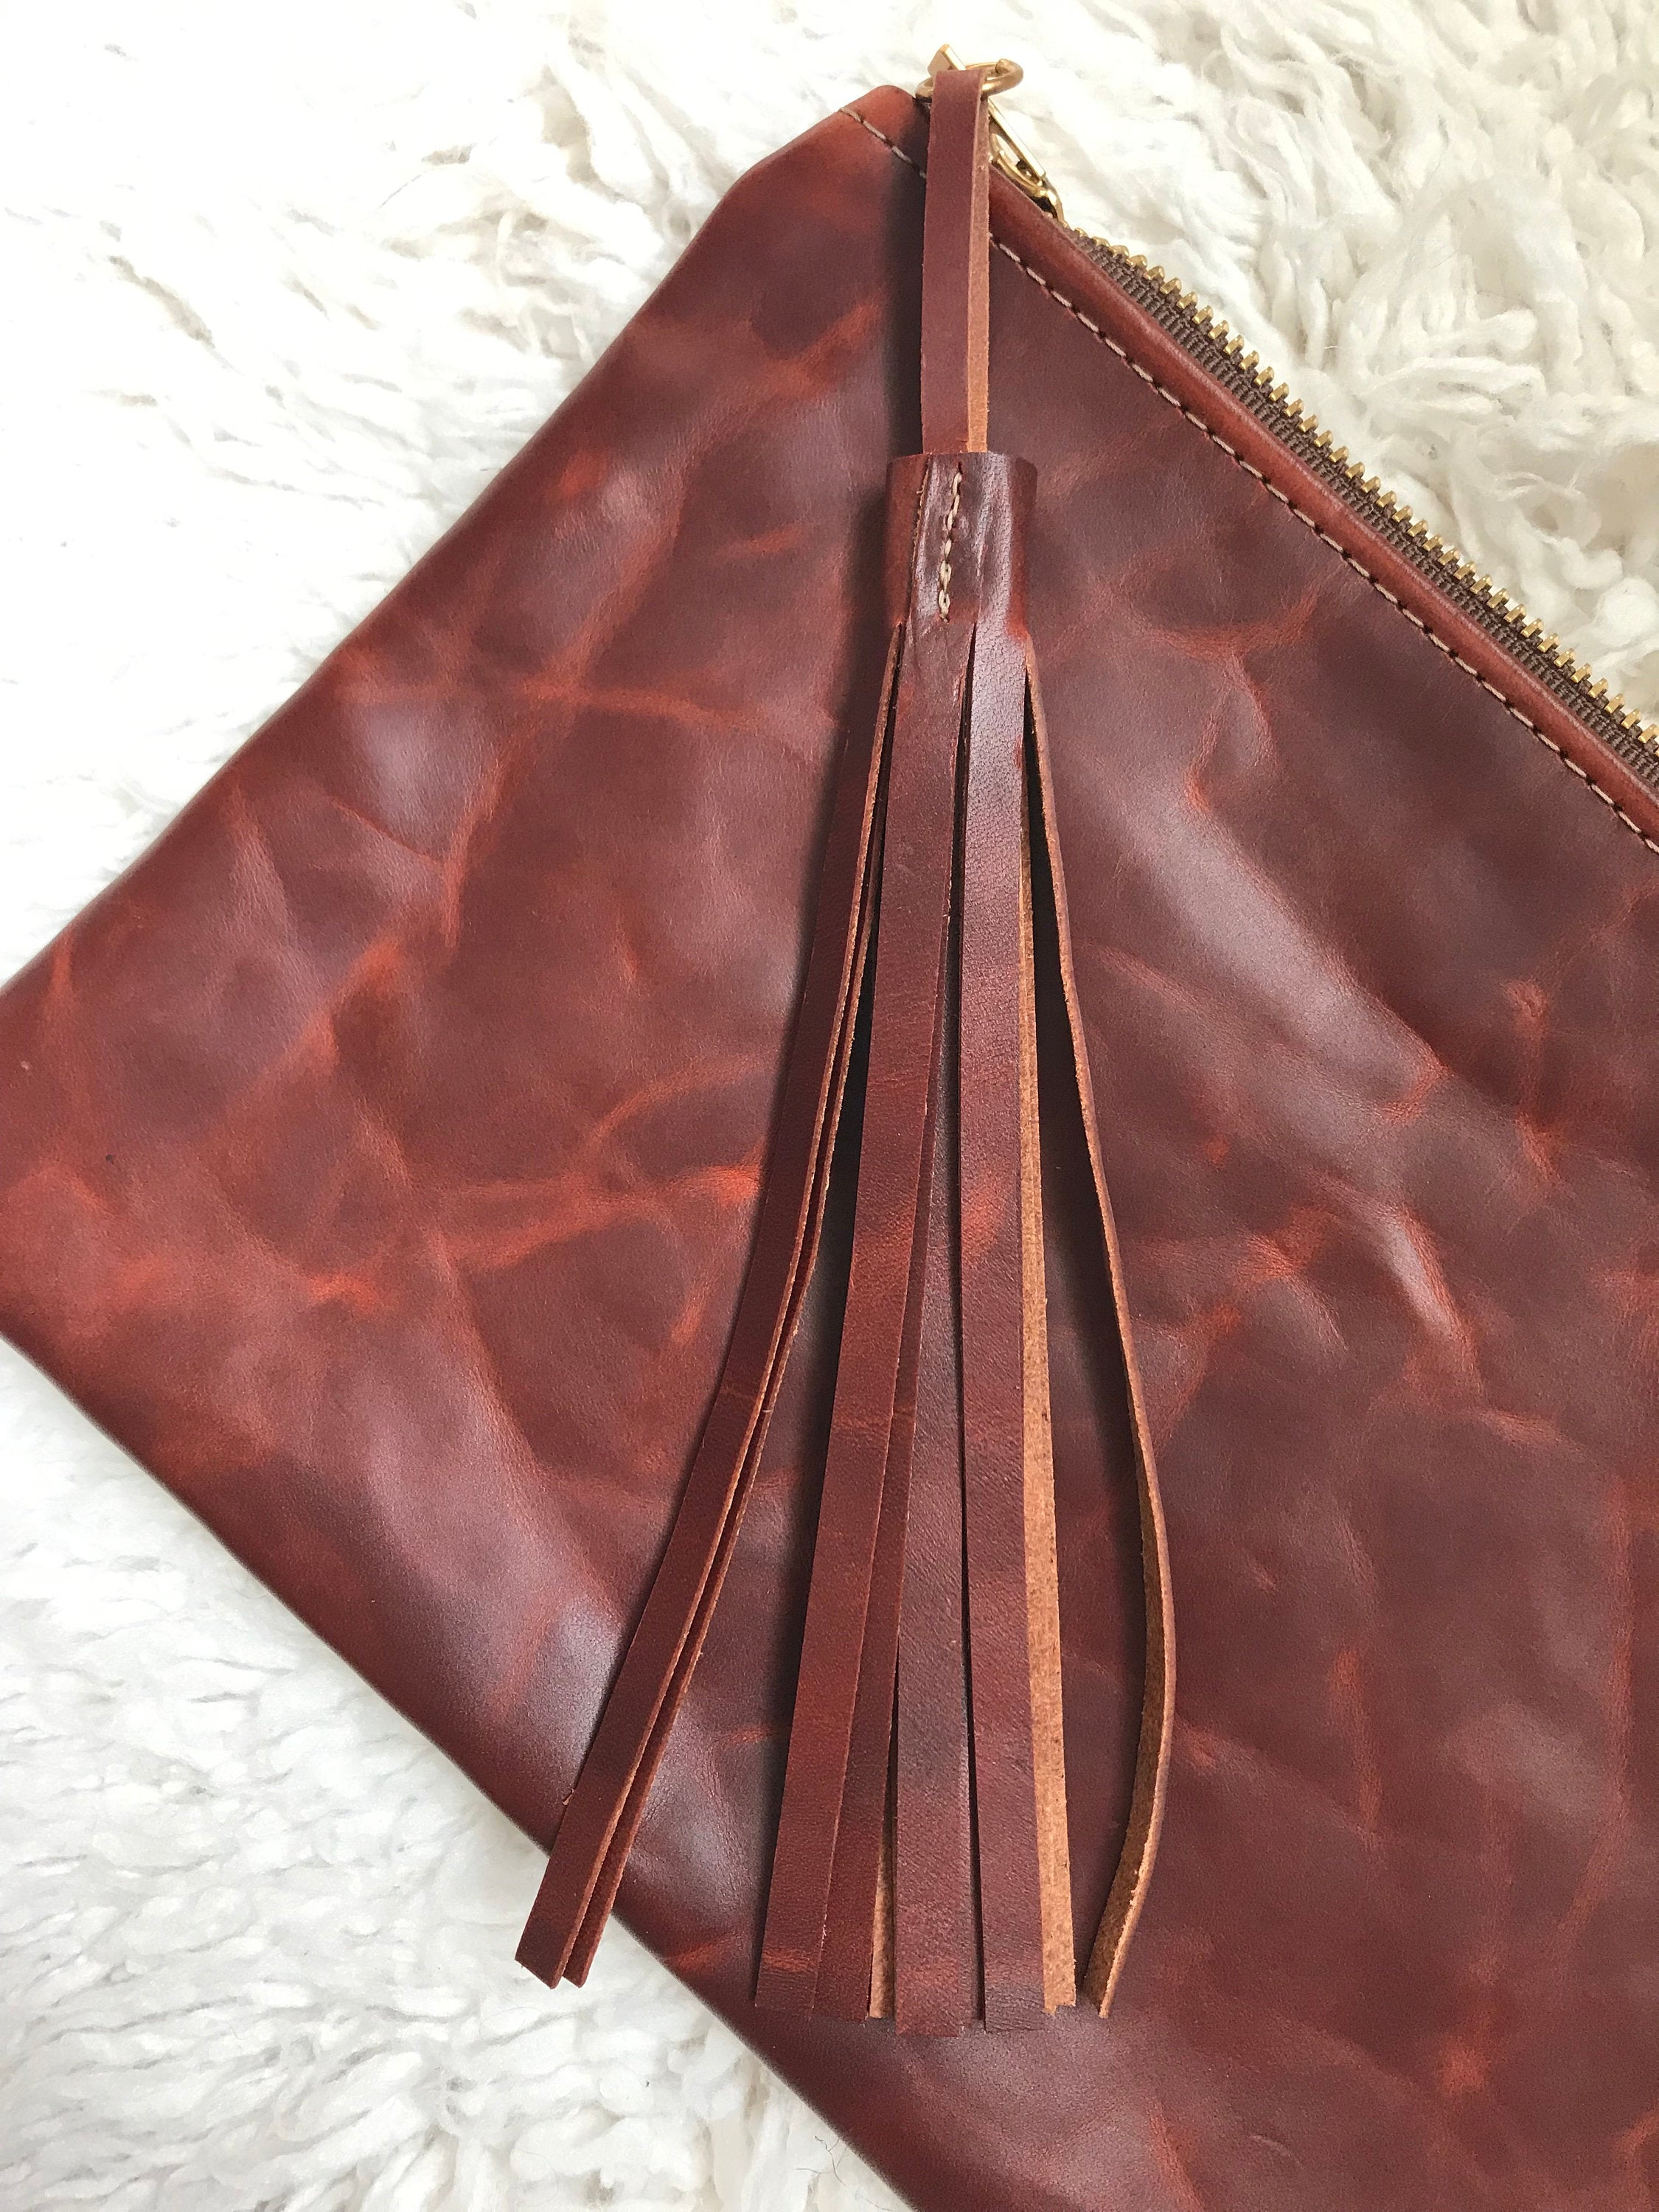 Brown leather tassel on distressed leather clutch bag